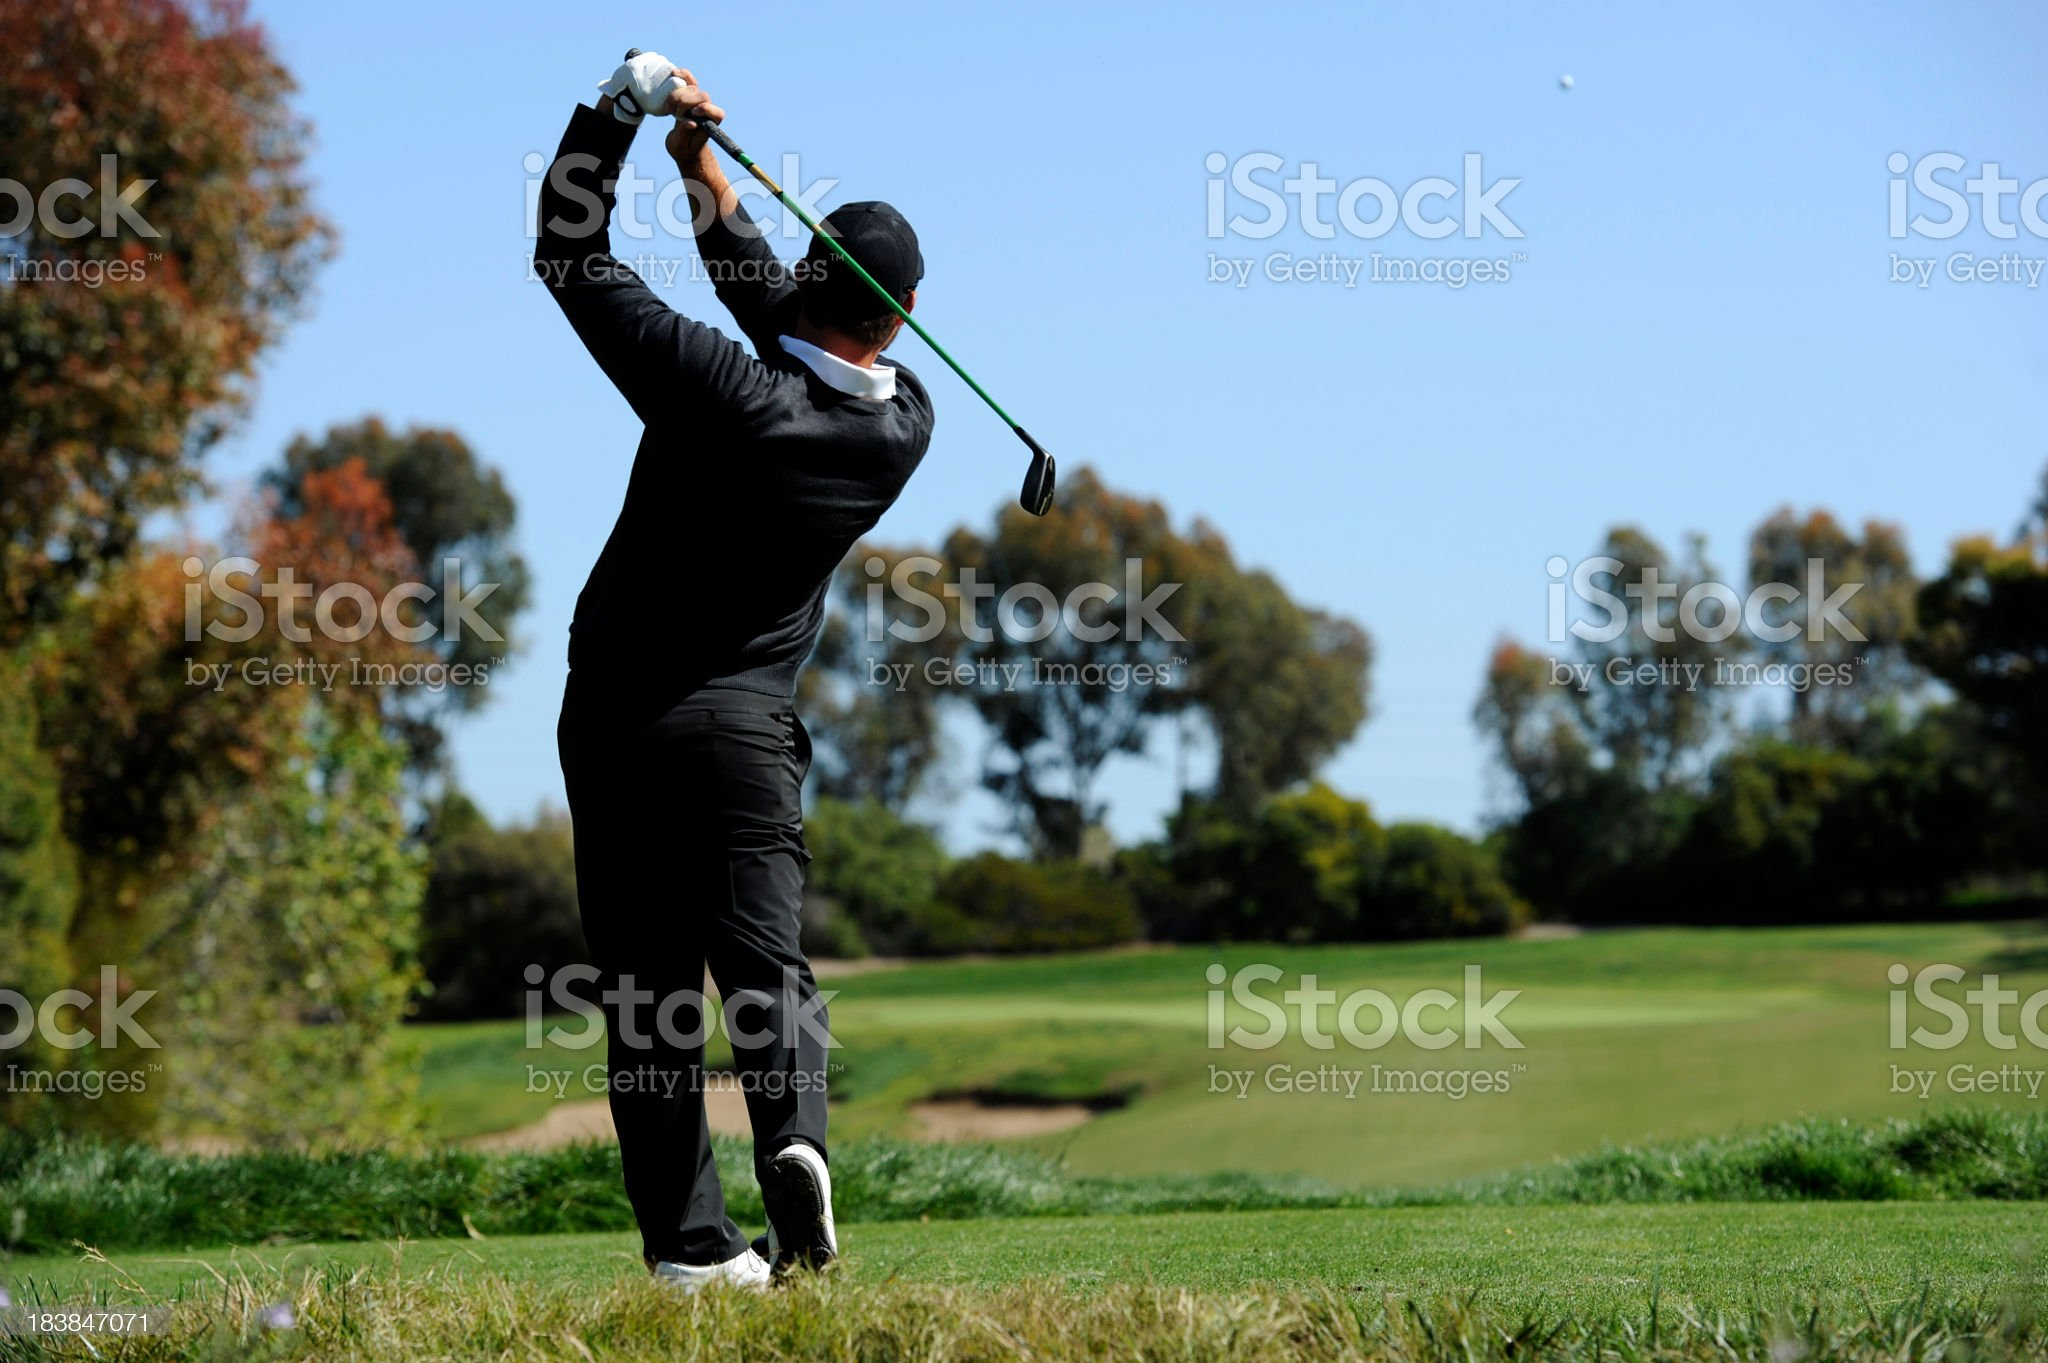 Golfer driving on a golf course with fall foliage  royalty-free stock photo